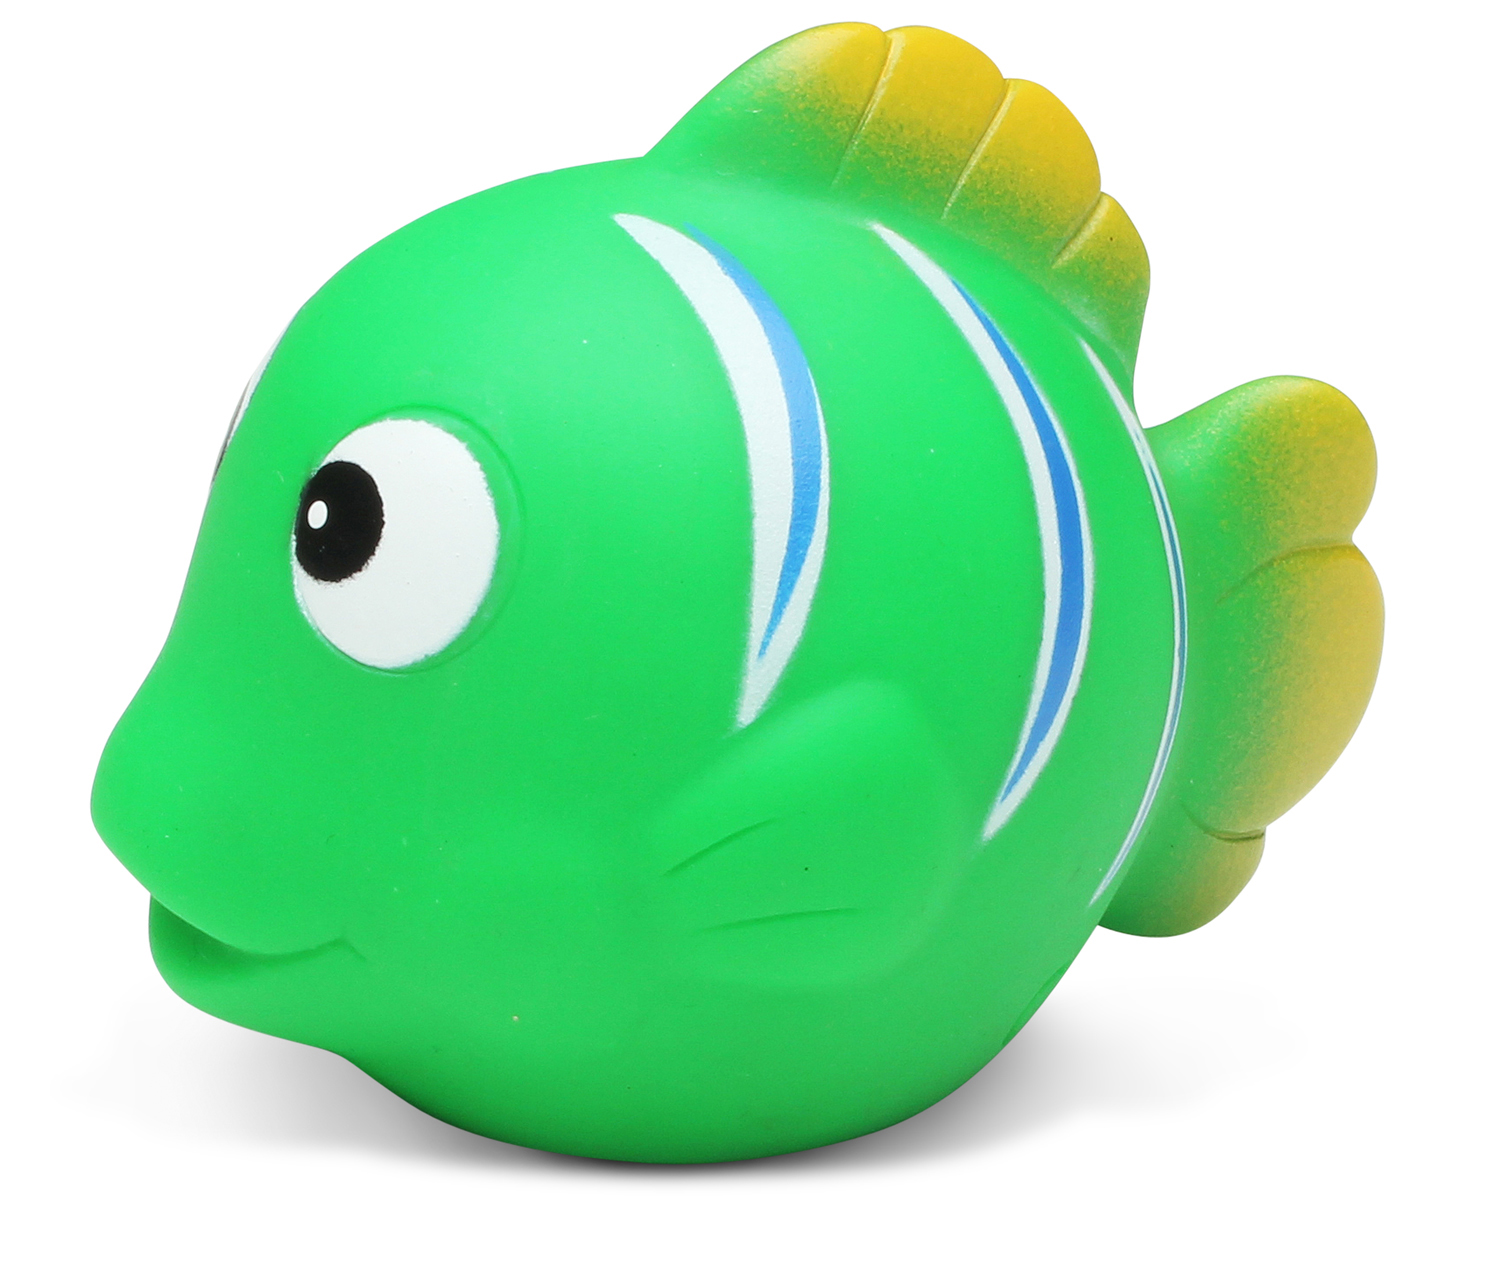 Toddler Bathtime Learning Toy Dollibu Bath Buddies Green Reef Fish Rubber Squirter Toy... by Puzzled Inc